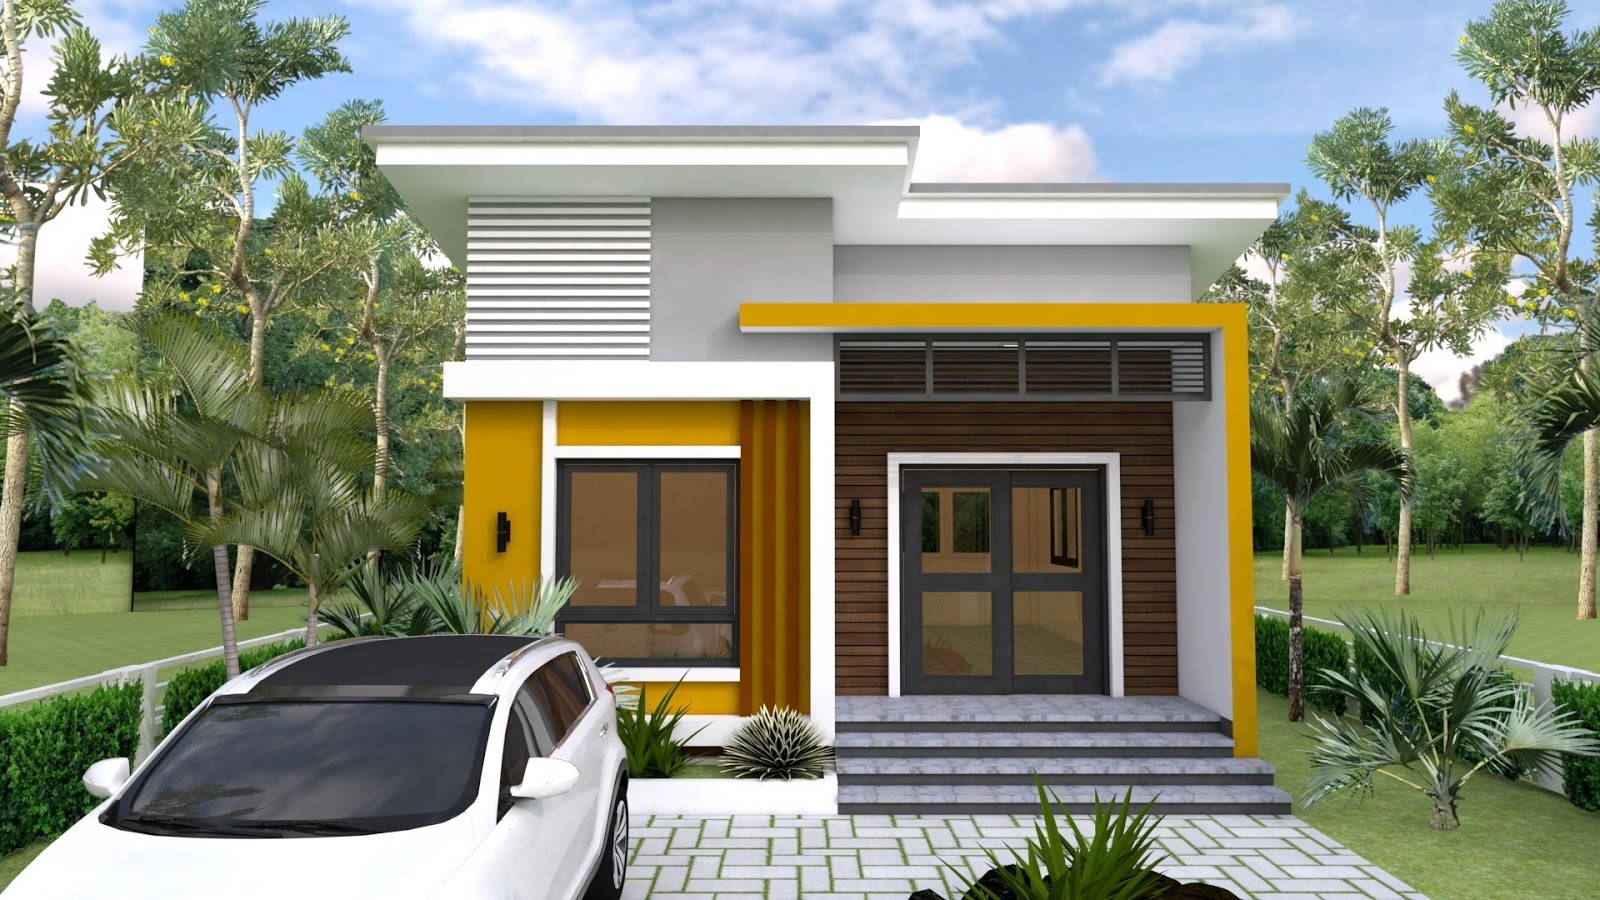 2 bedroom house plans indian style - Best House Plan Design